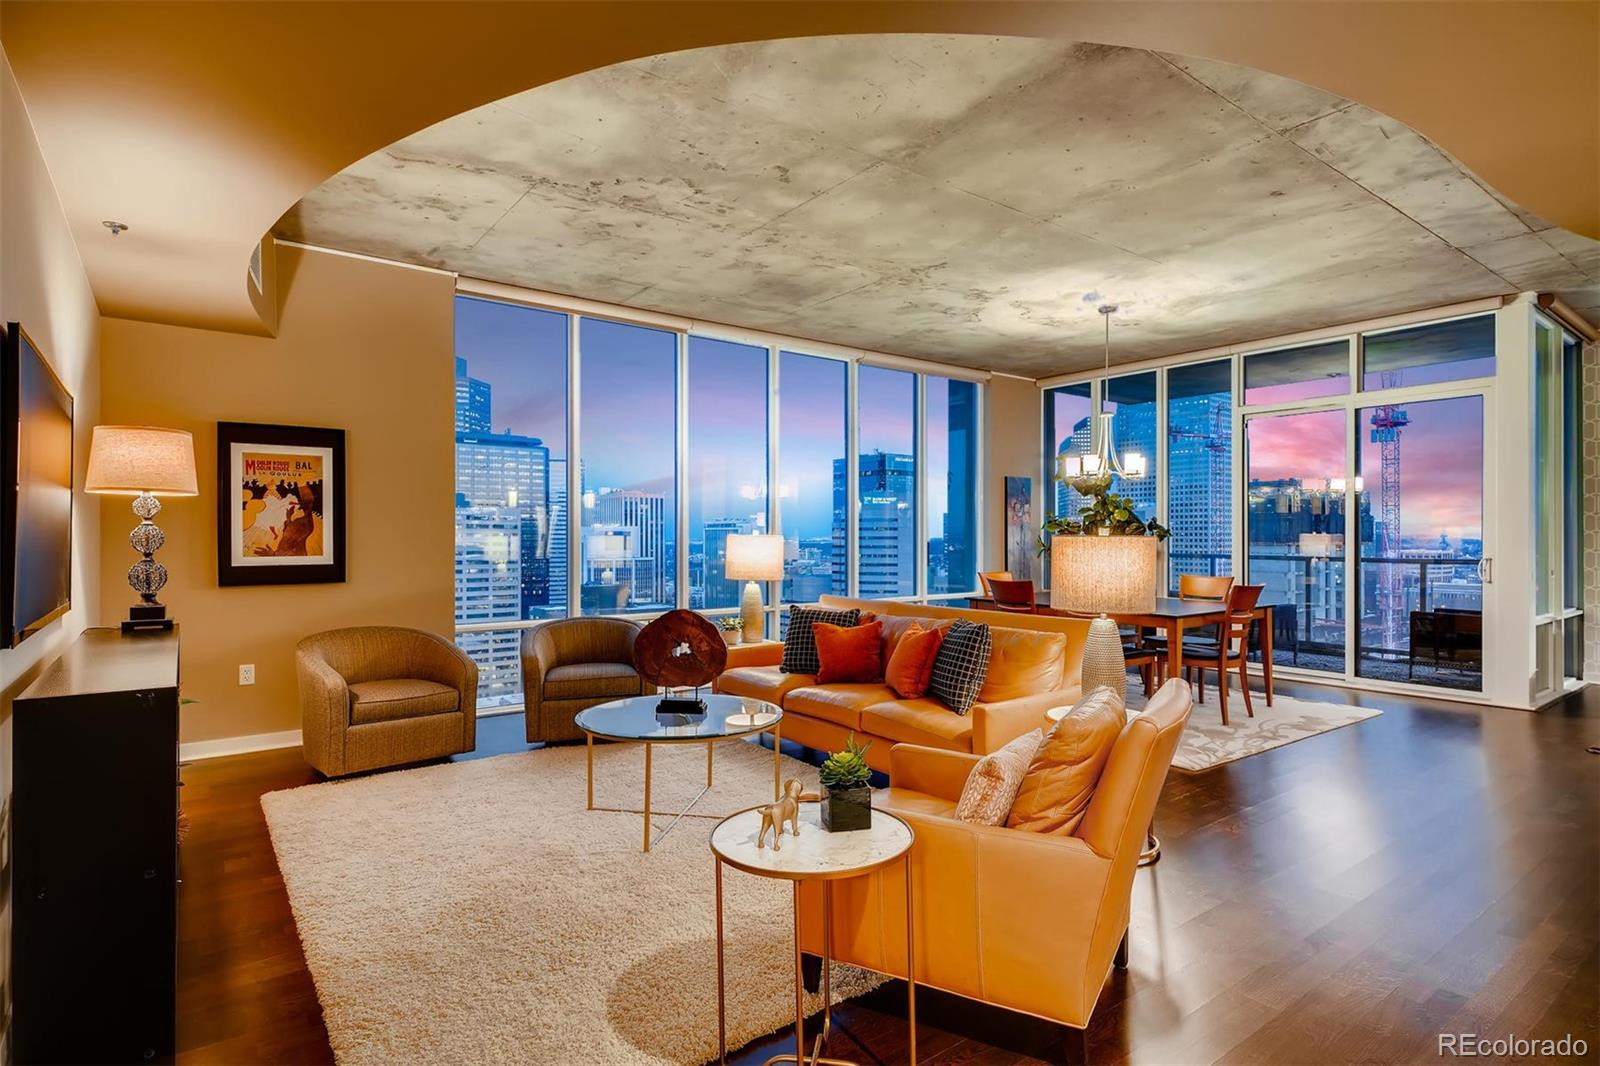 """NO HOA DUES FOR A YEAR!! ALL FURNISHINGS & ACCESSORIES (EXCEPT A FEW STAGING ITEMS) INCLUDED AT THIS PRICE!! SPECTACULAR VIEWS IN A CORNER HOME! Step into this gorgeous SPIRE home perched 34 stories above Denver, with all of downtown at your feet. This spacious 2-bedroom/2.5-bathroom corner condo has nearly 1,700 square feet of contemporary living space in a wide-open floor plan with tons of natural light. Plenty of privacy with two bedrooms on opposite ends of the home. """"This is my favorite floor plan at SPIRE"""" is a frequent comment made by guests and residents alike. Special features and upgrades include beautiful hardwood floors, new carpeting in the bedrooms, Hunter Douglas shades, ceiling fans, motorized shades, electronic thermostats, granite countertops, stainless steel appliances, contemporary wallpaper accents, and new custom cabinetry in the built-in bar area, featuring a wine fridge. TWO LARGE BALCONIES and access to the exclusive 42nd-floor SkyClub lounge make this home a rare find at SPIRE! Also included: 1 deeded parking space in a prime location and 1 storage space in the attached garage. All seller-owned furniture and furnishings are available for an additional fee. You'll want to view this residence twice to truly appreciate the jaw-dropping views – once by day and once at night. The highly-desirable 42-story SPIRE is LEED-certified w/40,000 square feet of resort-like amenities, including a rooftop pool (heated and open year-round), a hot-tub, extensive health club, The Zone multimedia lounge, Box Office home theater, garage dog park, yoga garden, outdoor grilling area, 10th-floor private event lounge, 24-hour courtesy desk, furnished guest suites, modern security and access control systems. Very well-maintained building. SPIRE Denver has fast internet coming soon--1 gig dedicated to each condo. Fastest downtown! Come home to Downtown Denver's SPIRE -- life is better here!"""